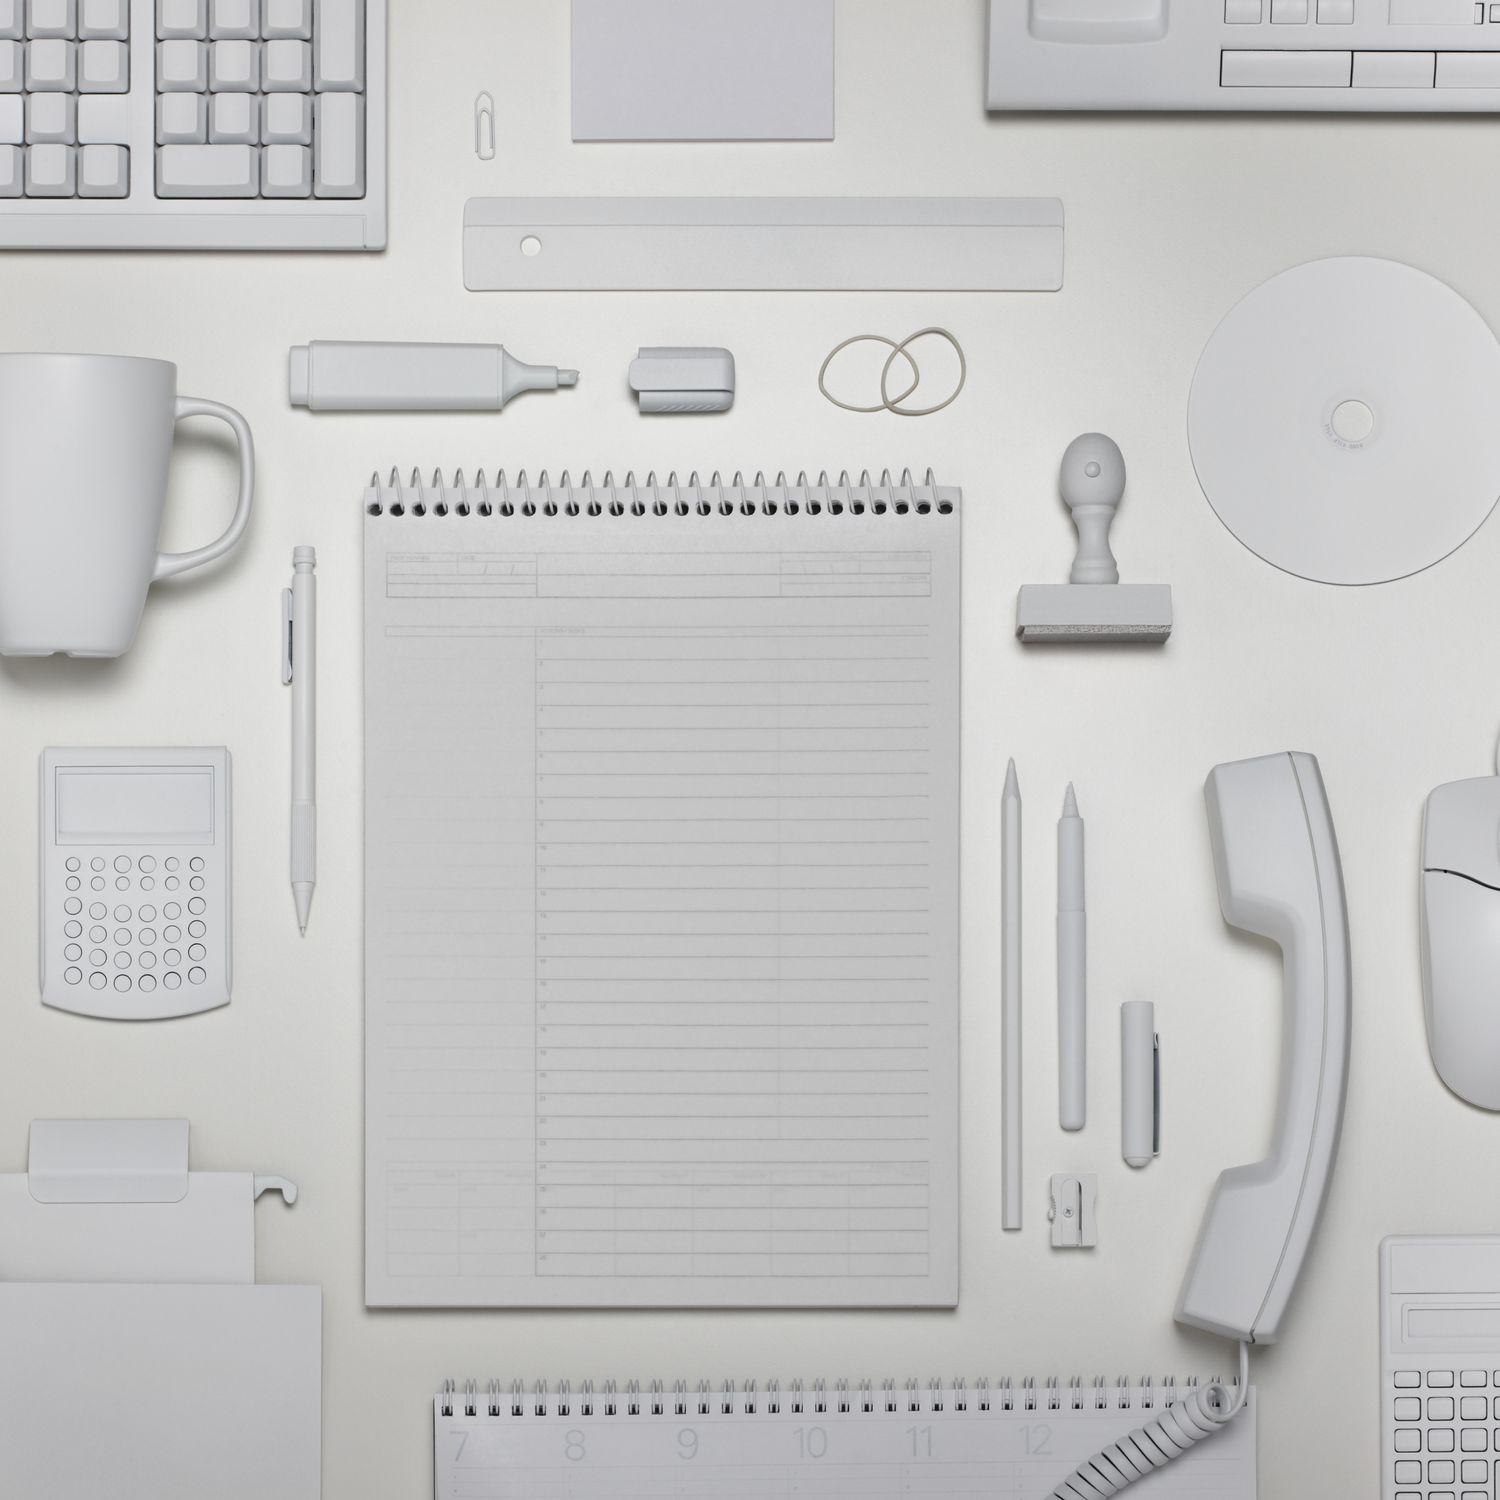 10 Must Have Desk Accessories For Your Home Office